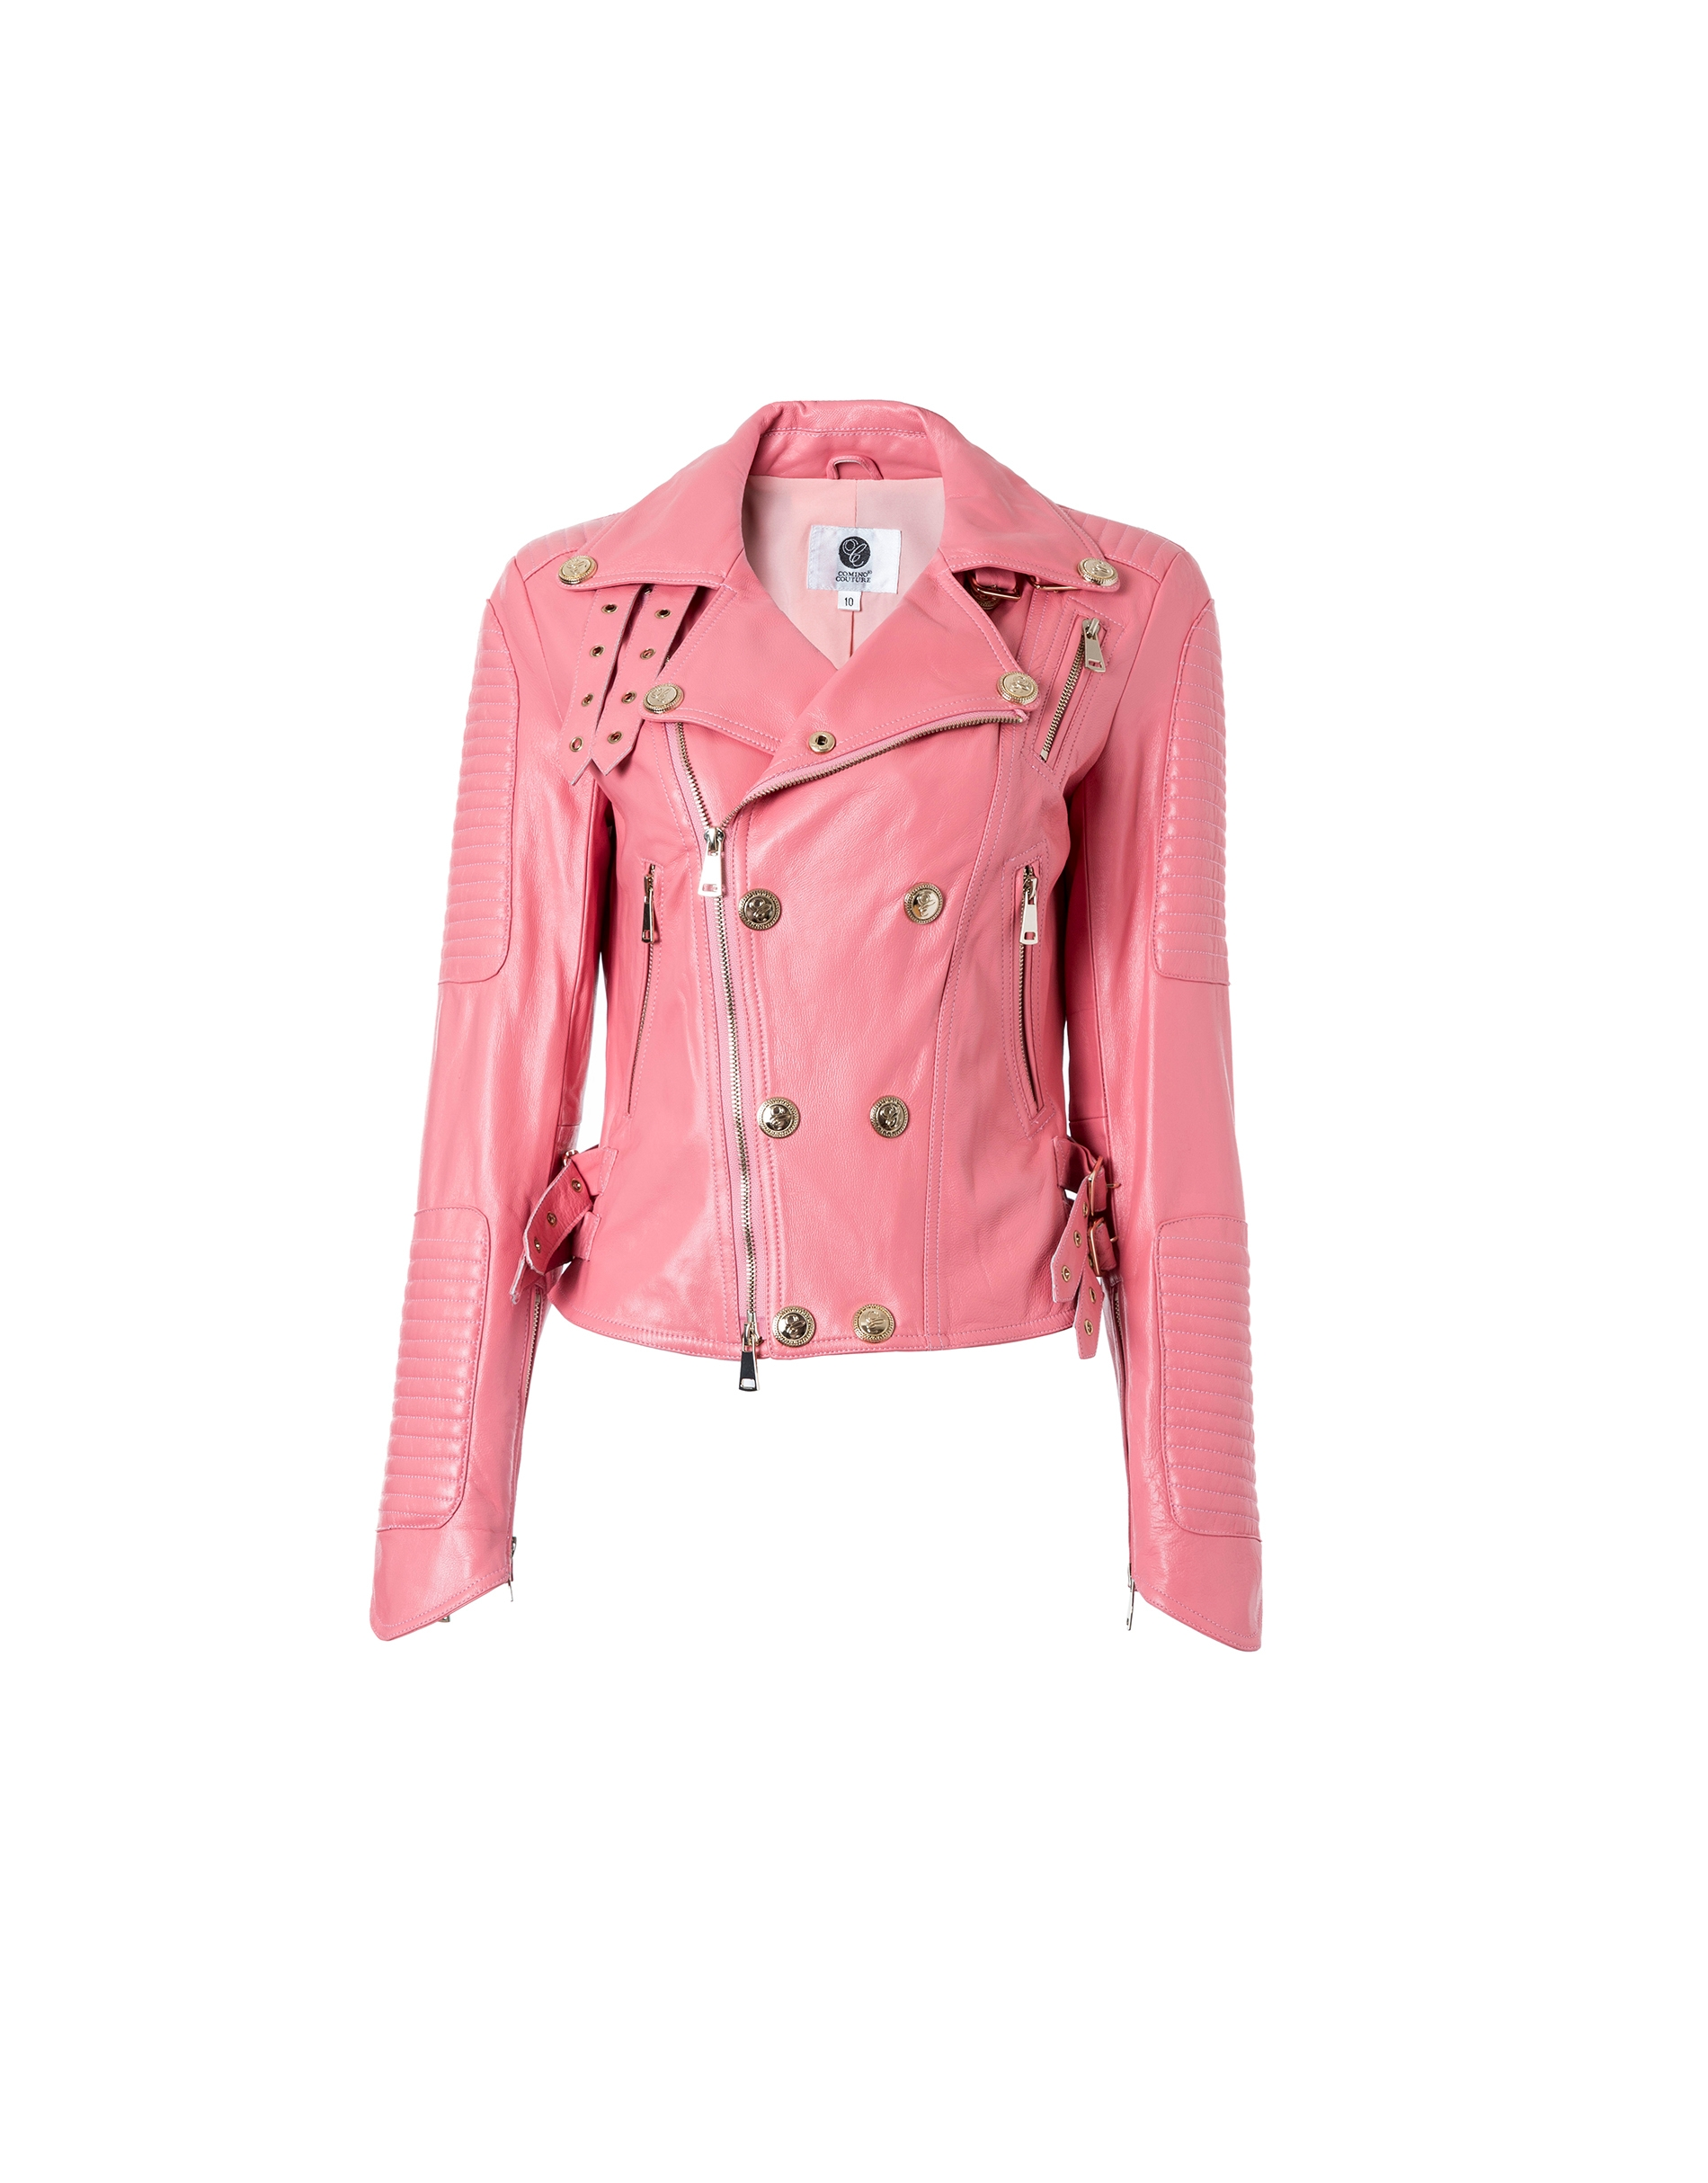 COMINO COUTURE REAL LEATHER BIKER JACKET